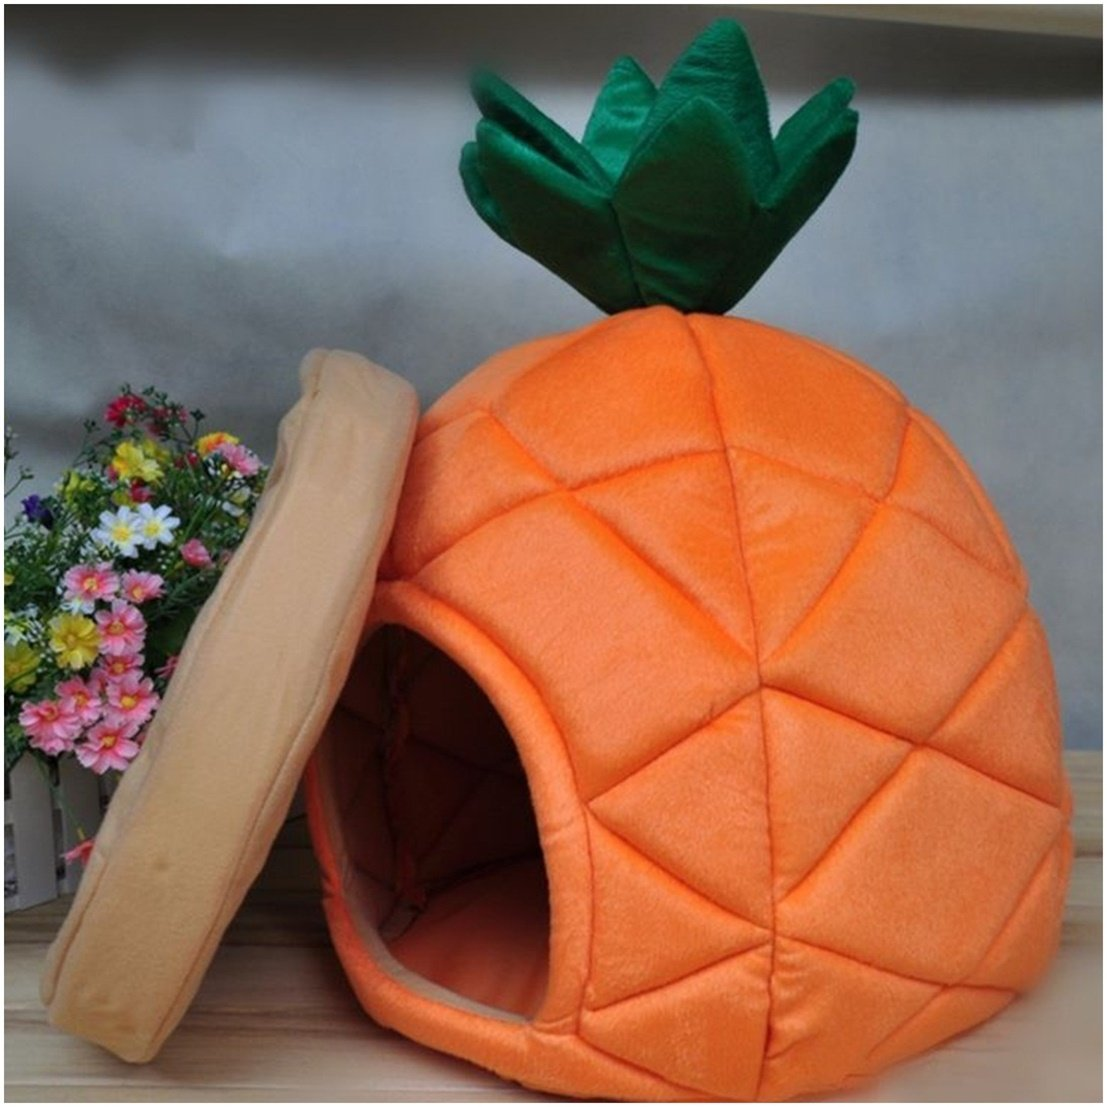 1Pc Illustrious Popular Pet Bed Size L Puppy Tent Dog House Kennel Furniture Style Pineapple